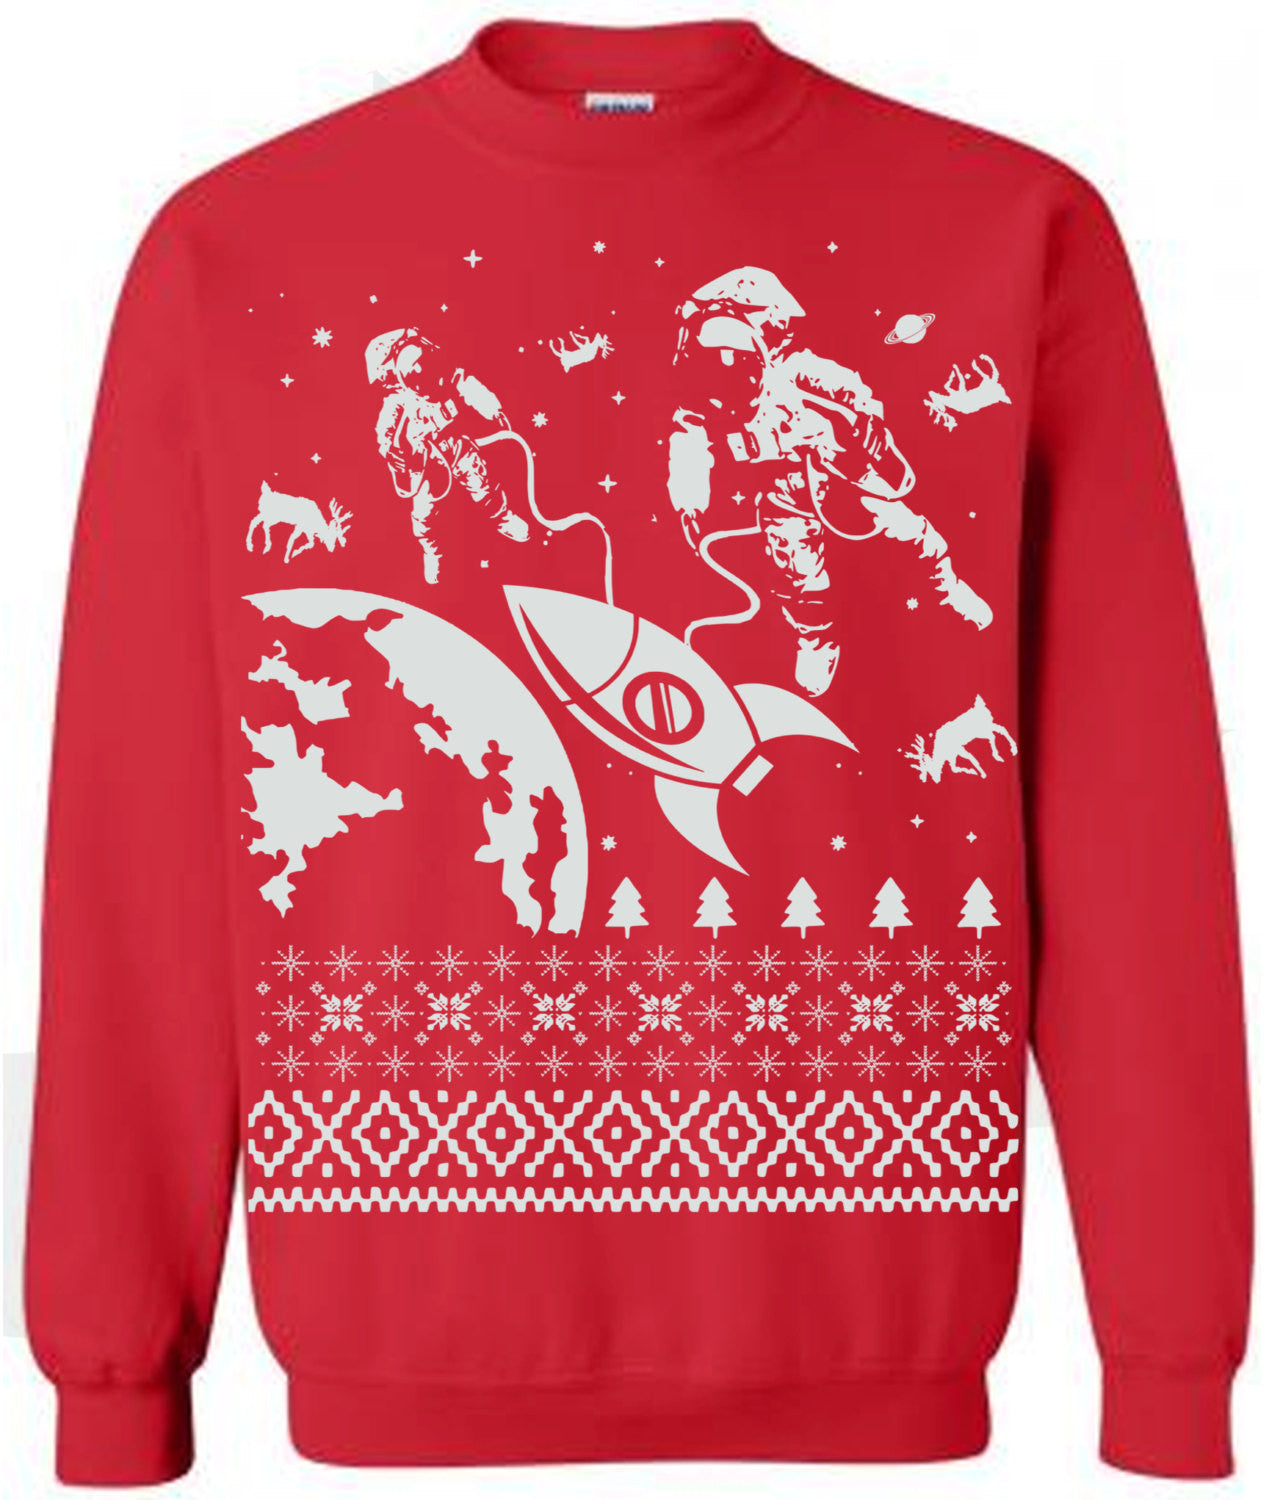 astronauts in outer space ugly christmas sweater flex fleece pullover classic sweatshirt s m l xl and xxl 3 color options - Classic Christmas Sweaters